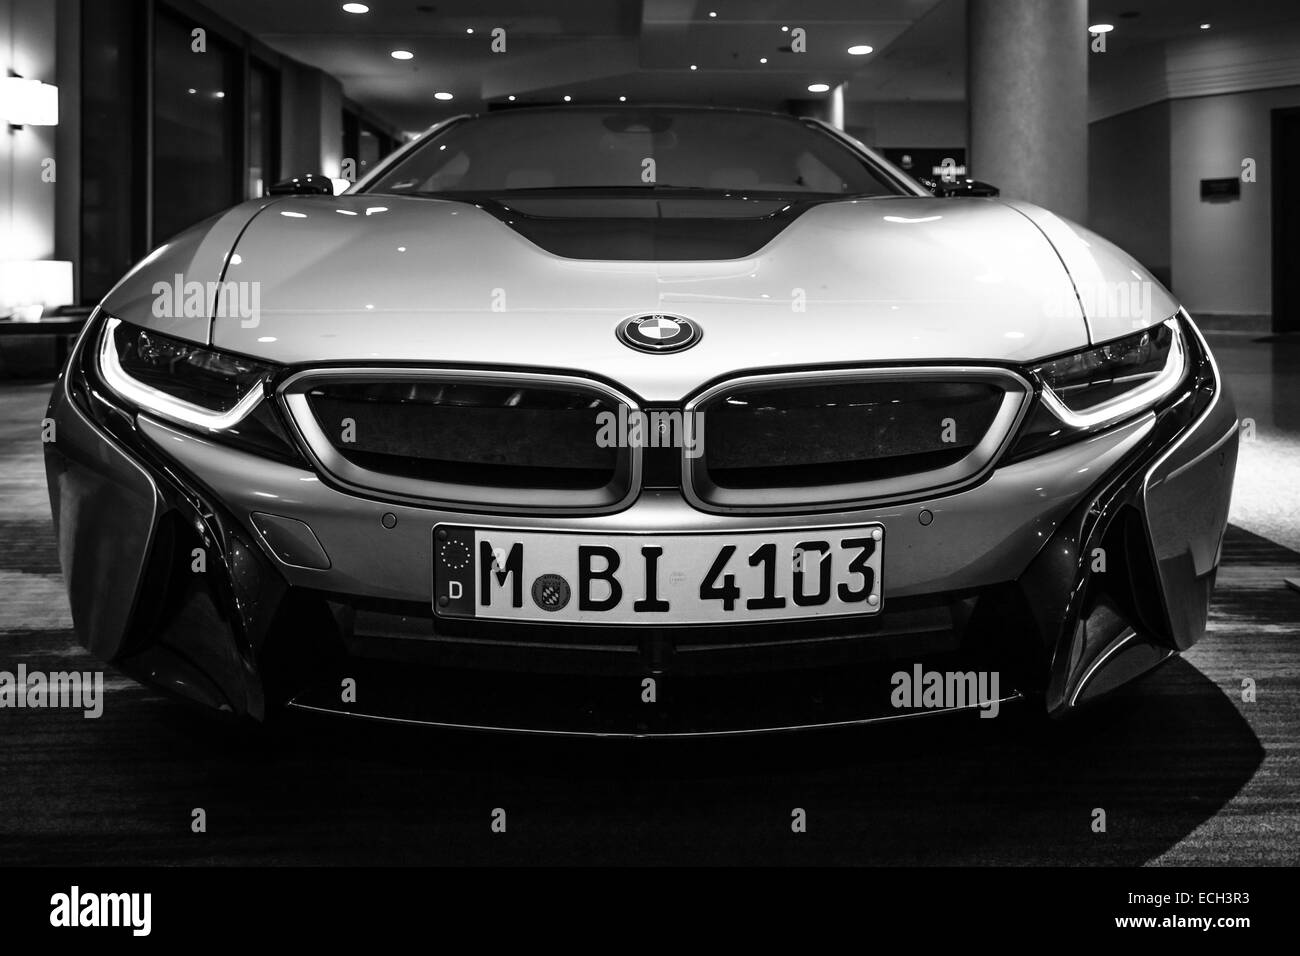 hybrid bmw i8 black and white stock photos images alamy